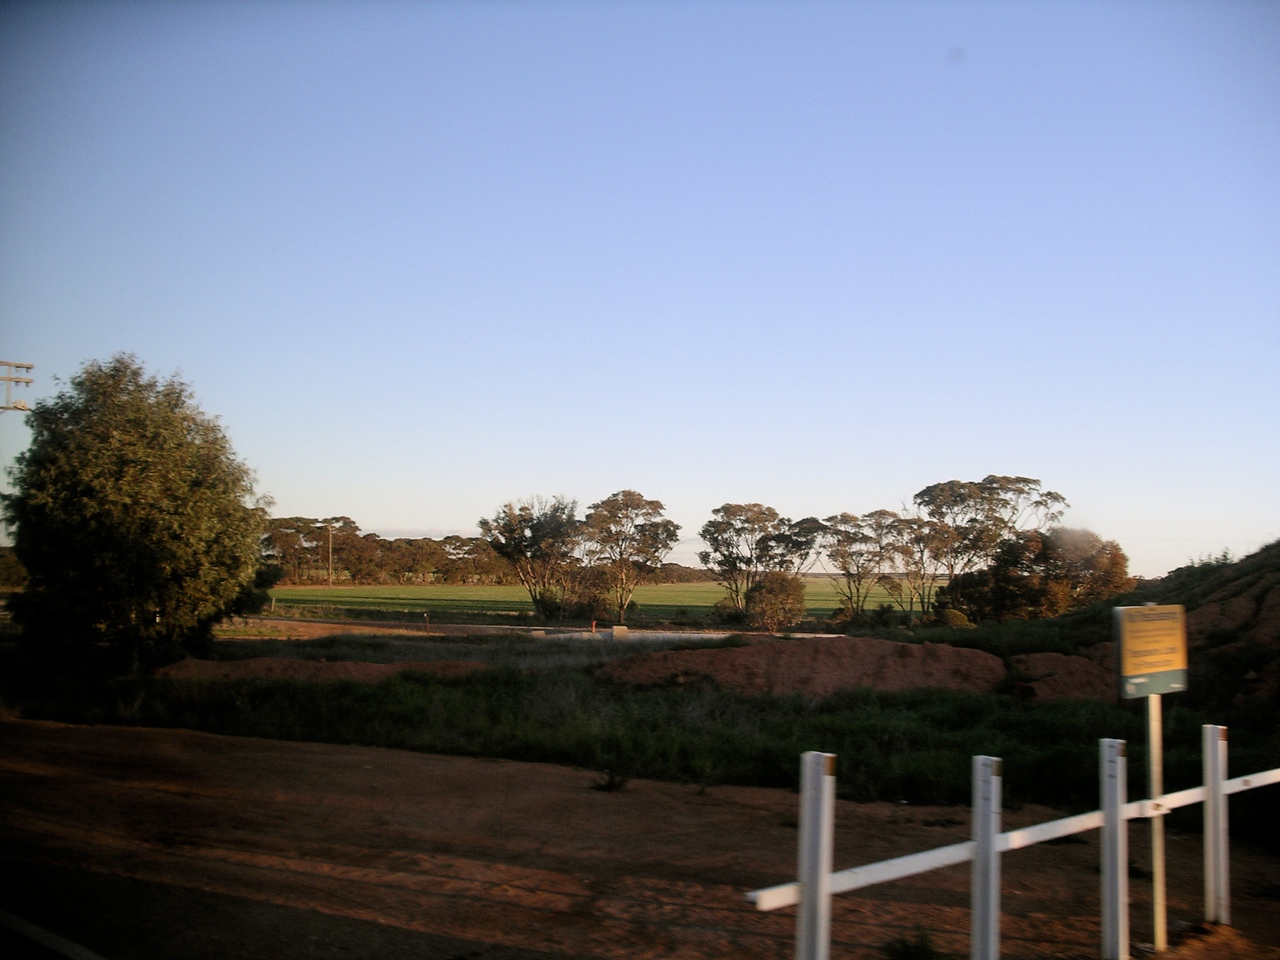 Western Australia countryside • Taken on the Indian Pacific Railway.